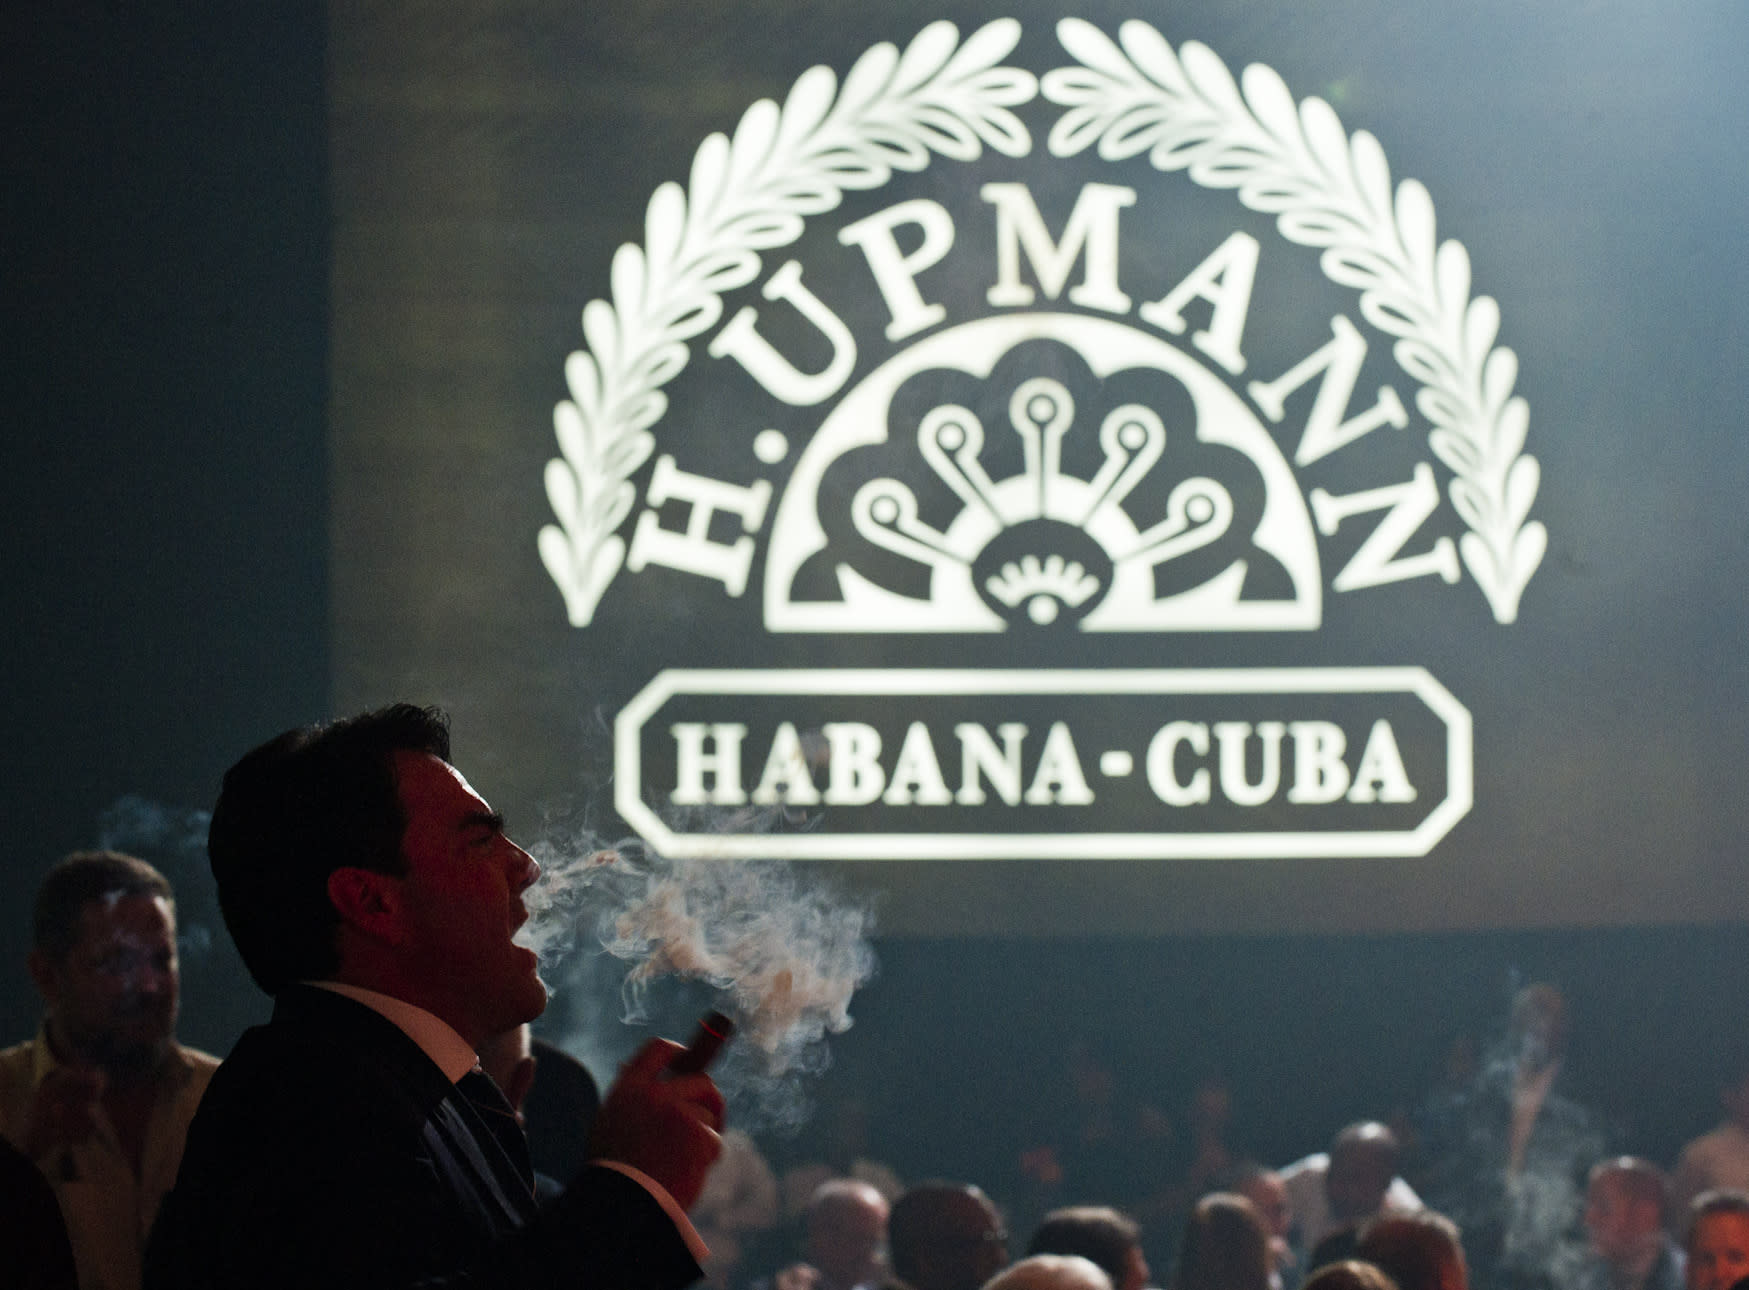 Americans eager to sup up Cuba's 'forbidden fruits'